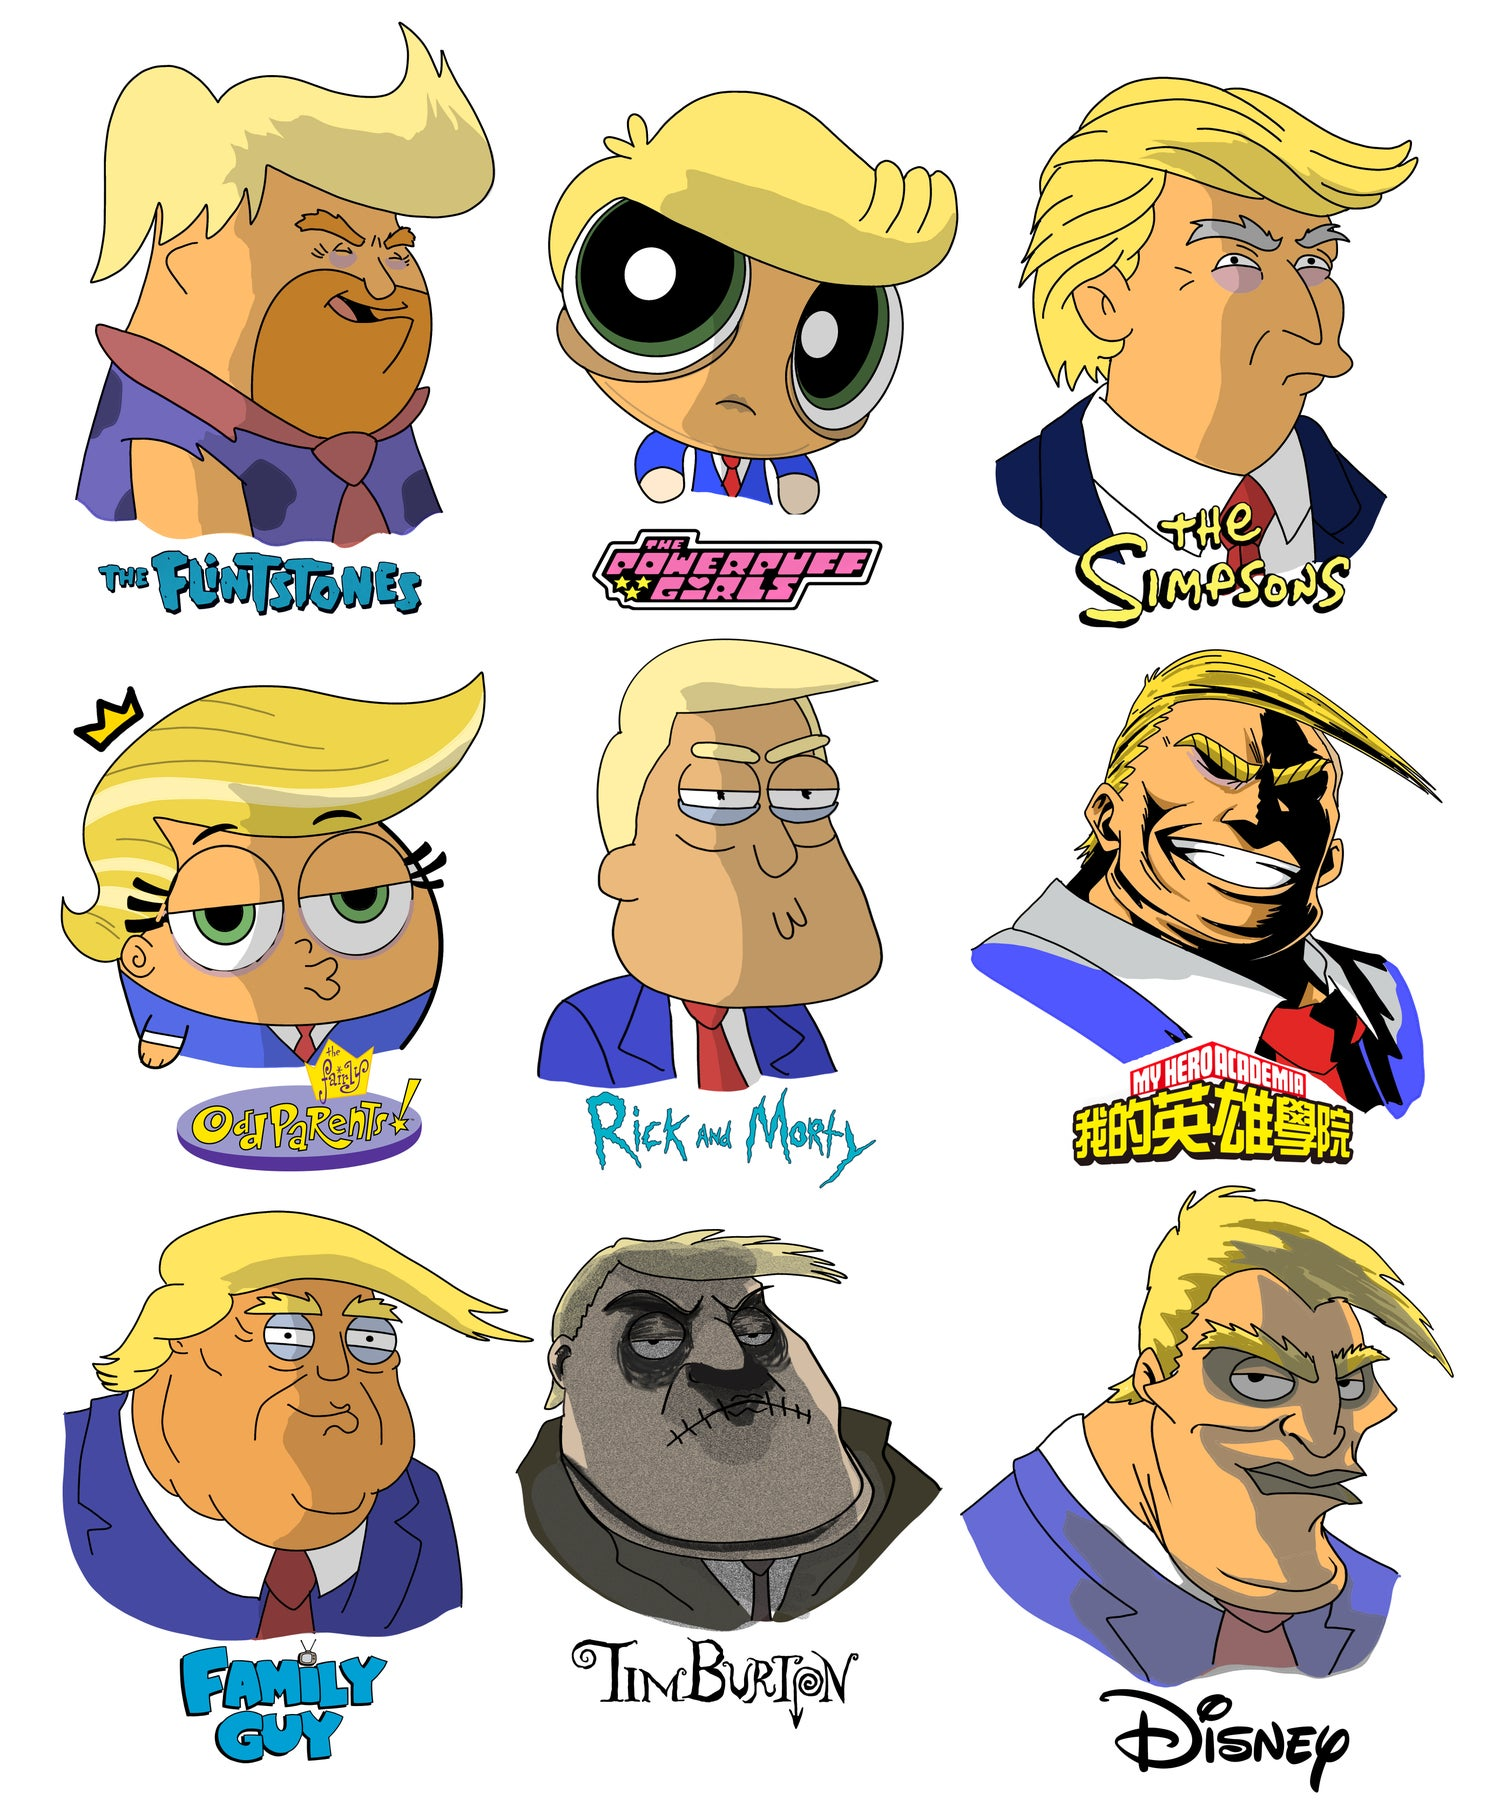 Image of #177 Trump different art styles